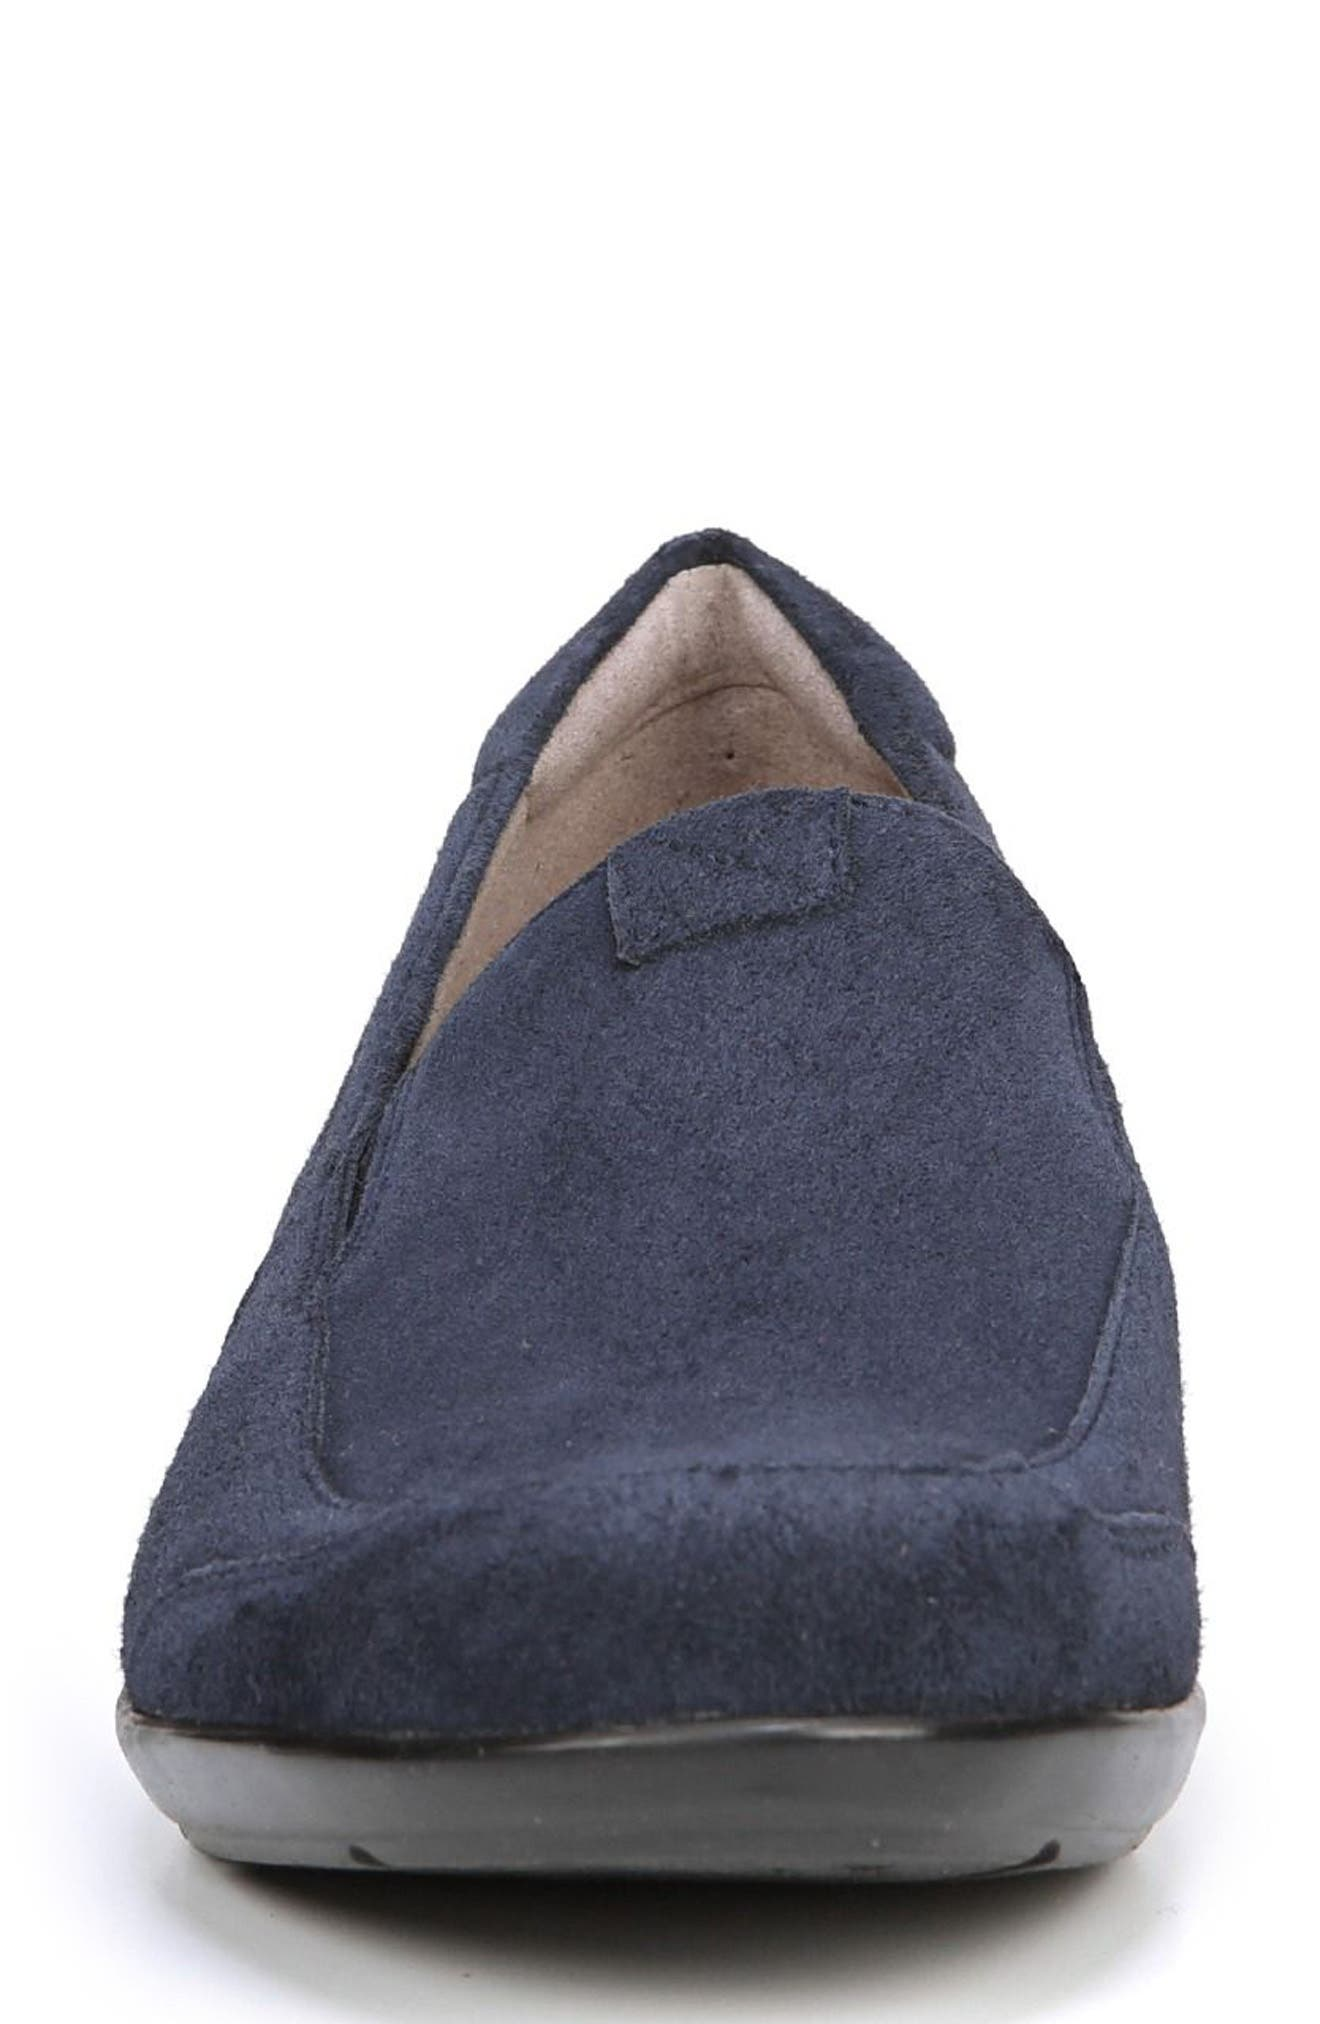 'Channing' Loafer,                             Alternate thumbnail 4, color,                             Navy Suede